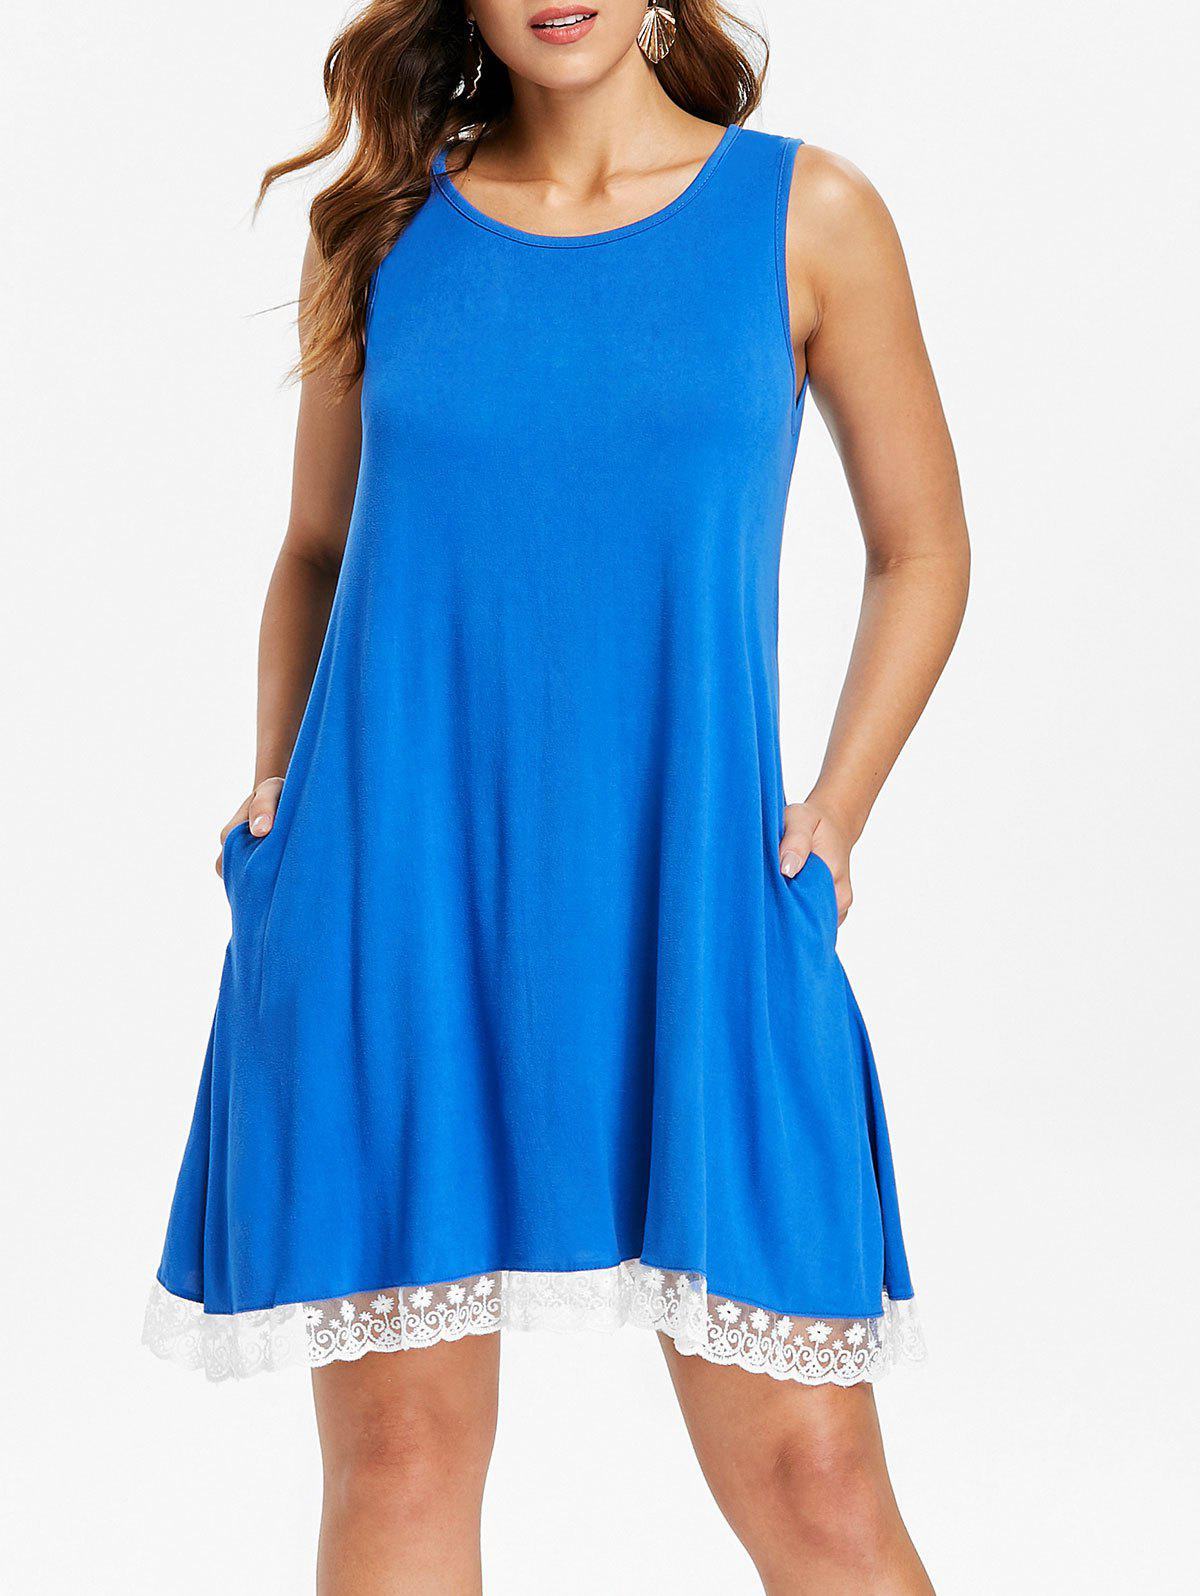 Lace Hemline Shift Dress - BLUE L